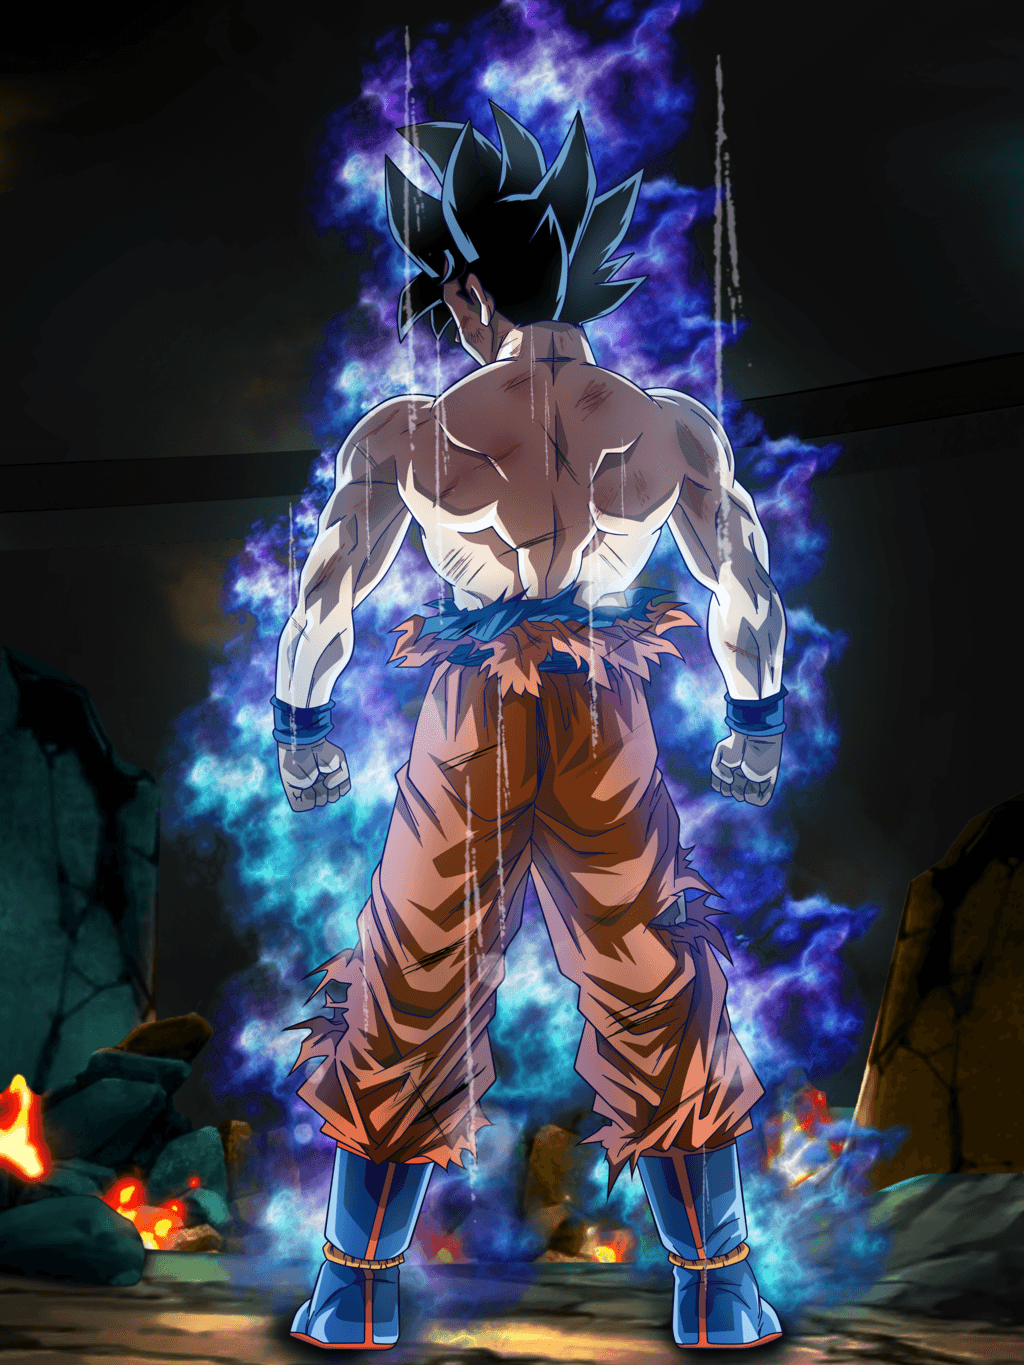 Son Goku Ultra Instinct Form by rmehedi